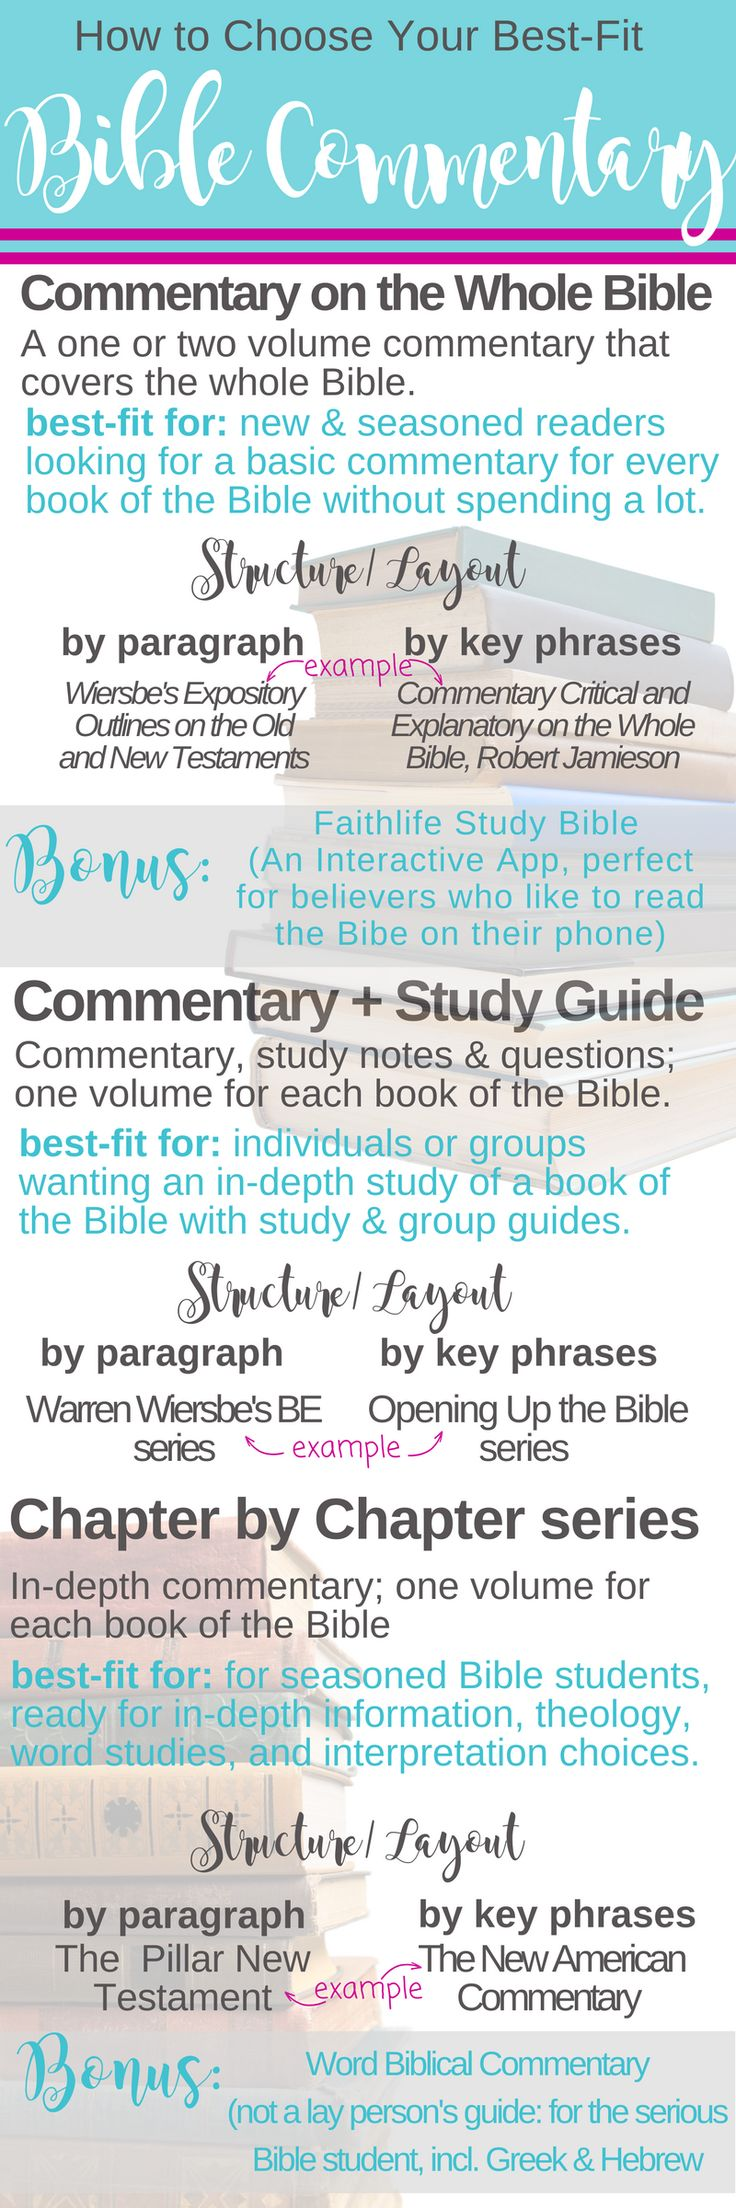 Find your best-fit Bible commentary; for individual or group study